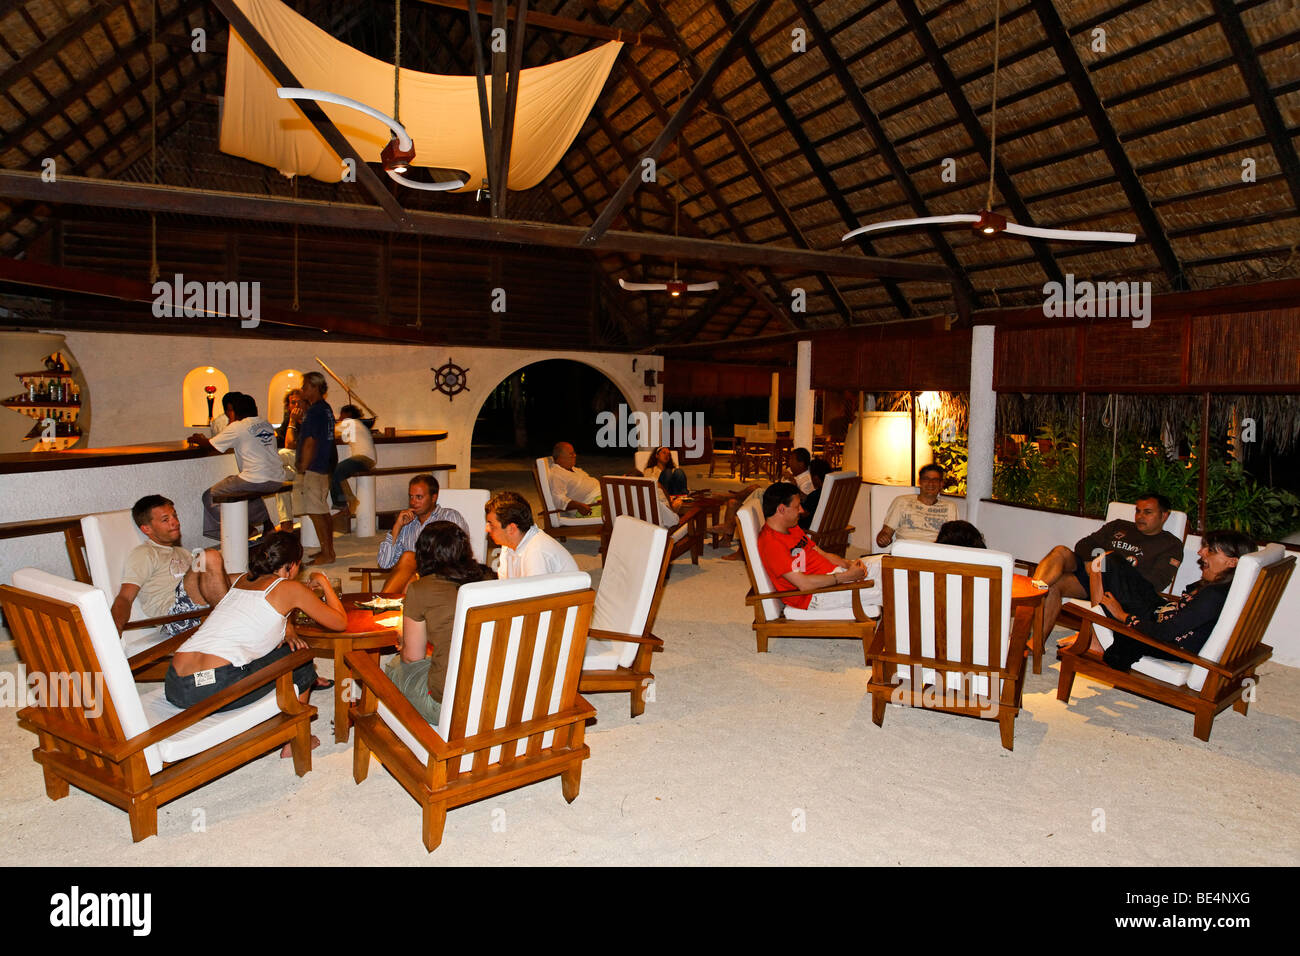 Hotel lobby with guests in the evening, illuminated, Maldive island, South Male Atoll, Maldives, Achipelago, Asia, - Stock Image